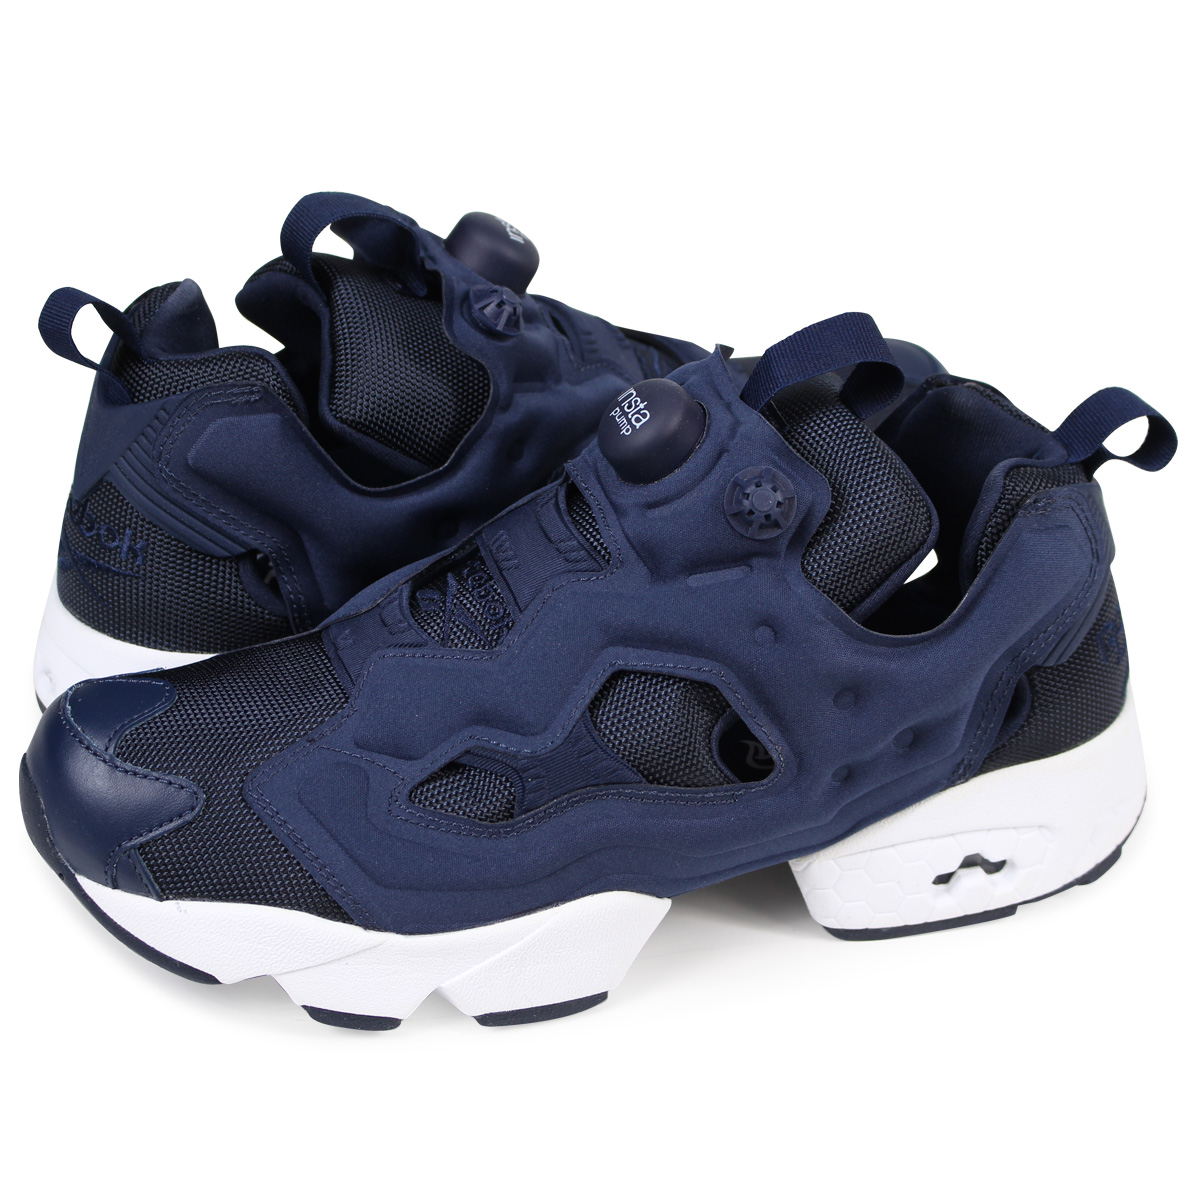 Buy reebok insta pump fury og navy | Up to 67% Discounts